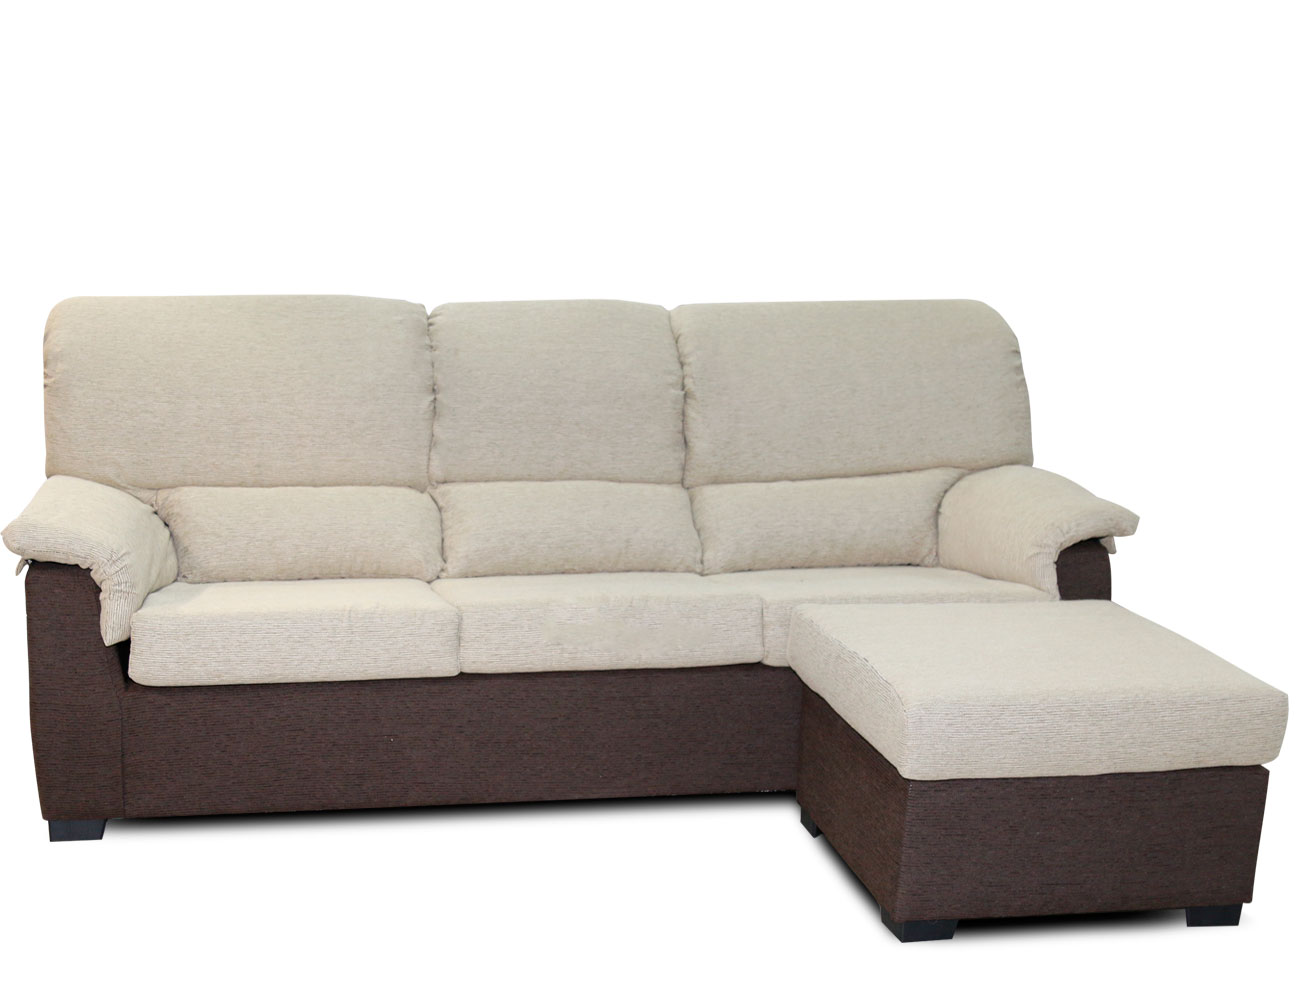 Sof chaiselongue barato con puf reversible 15285 for Sofa 2 plazas barato